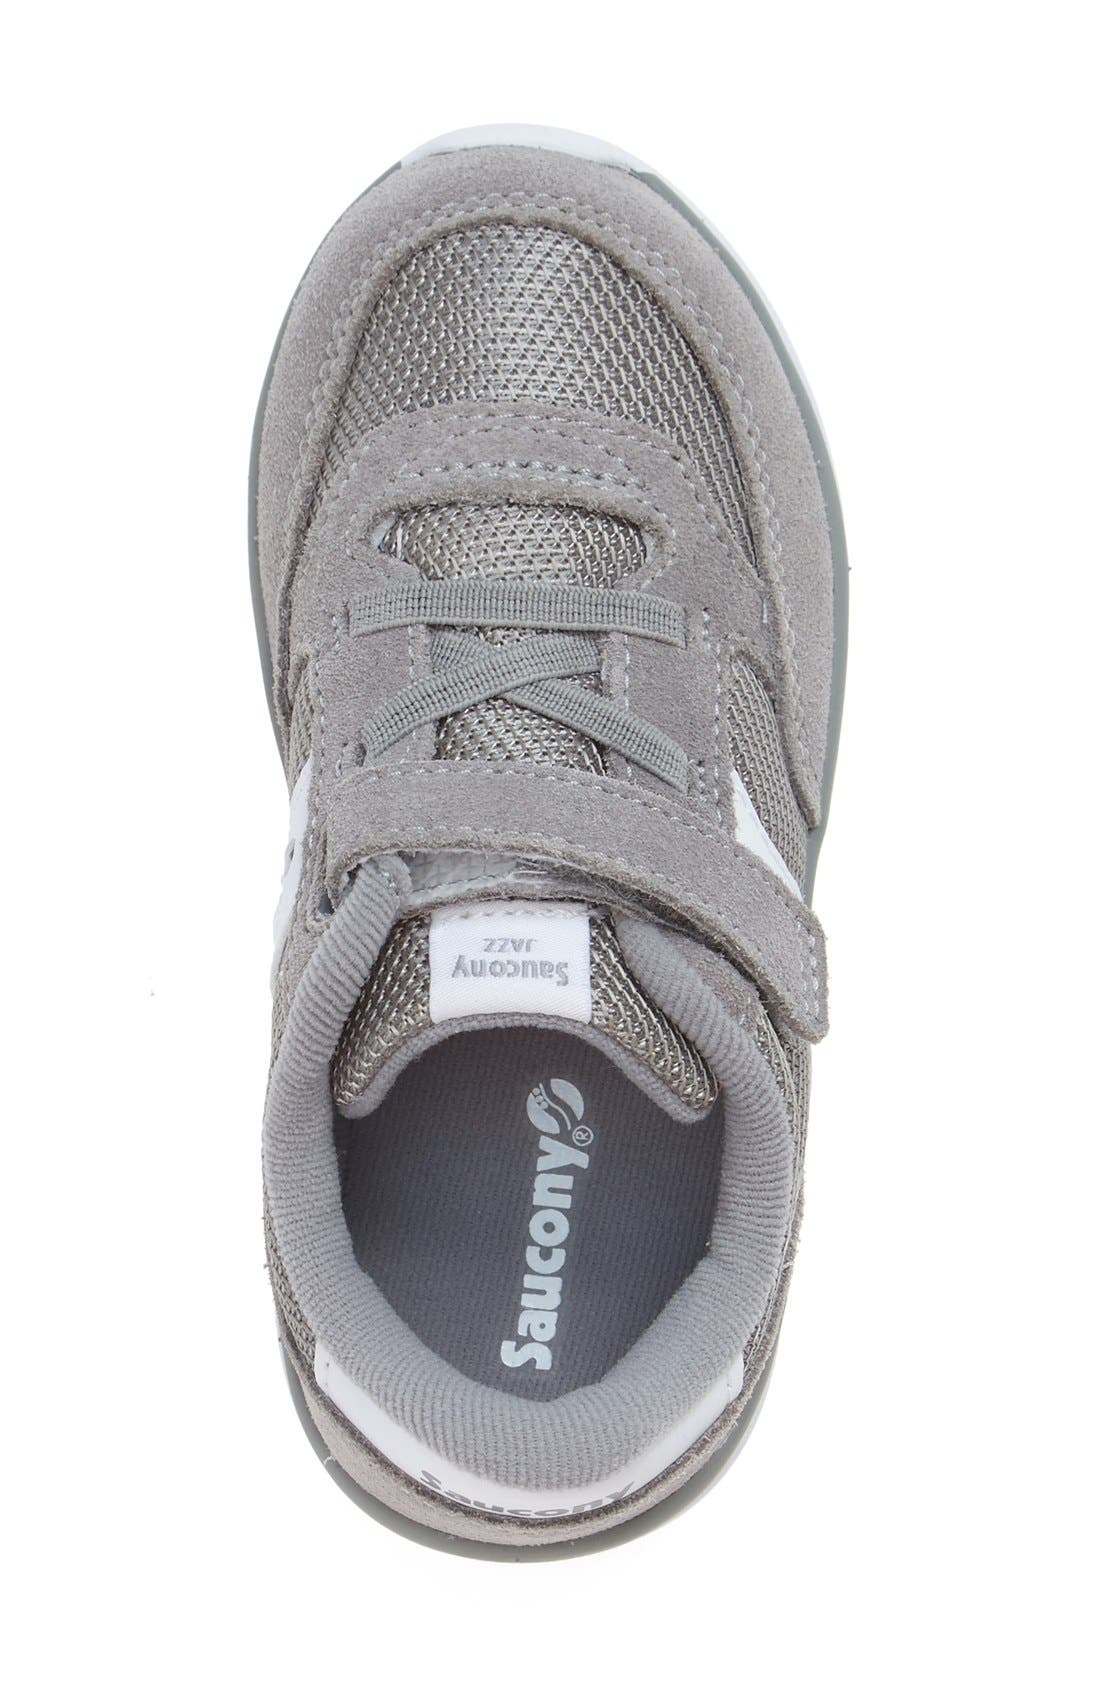 Jazz Lite Sneaker,                             Alternate thumbnail 7, color,                             GREY/ WHITE